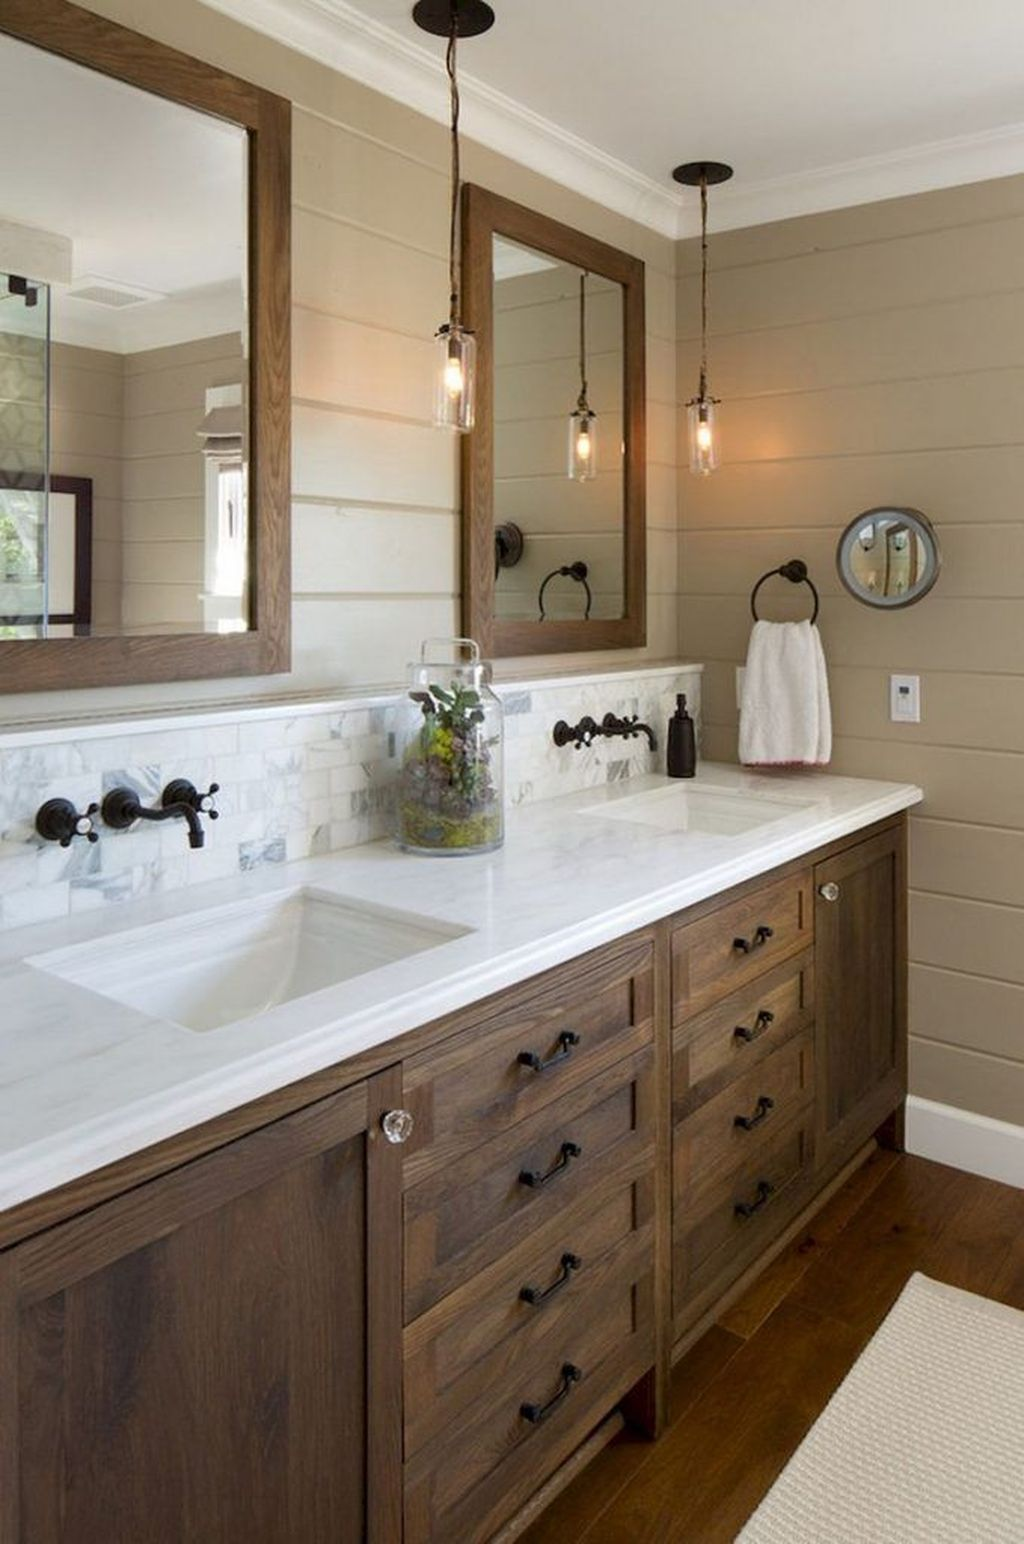 46 Gorgeous Farmhouse Bathroom Ideas With Rustic Designs #bathroomdecoration